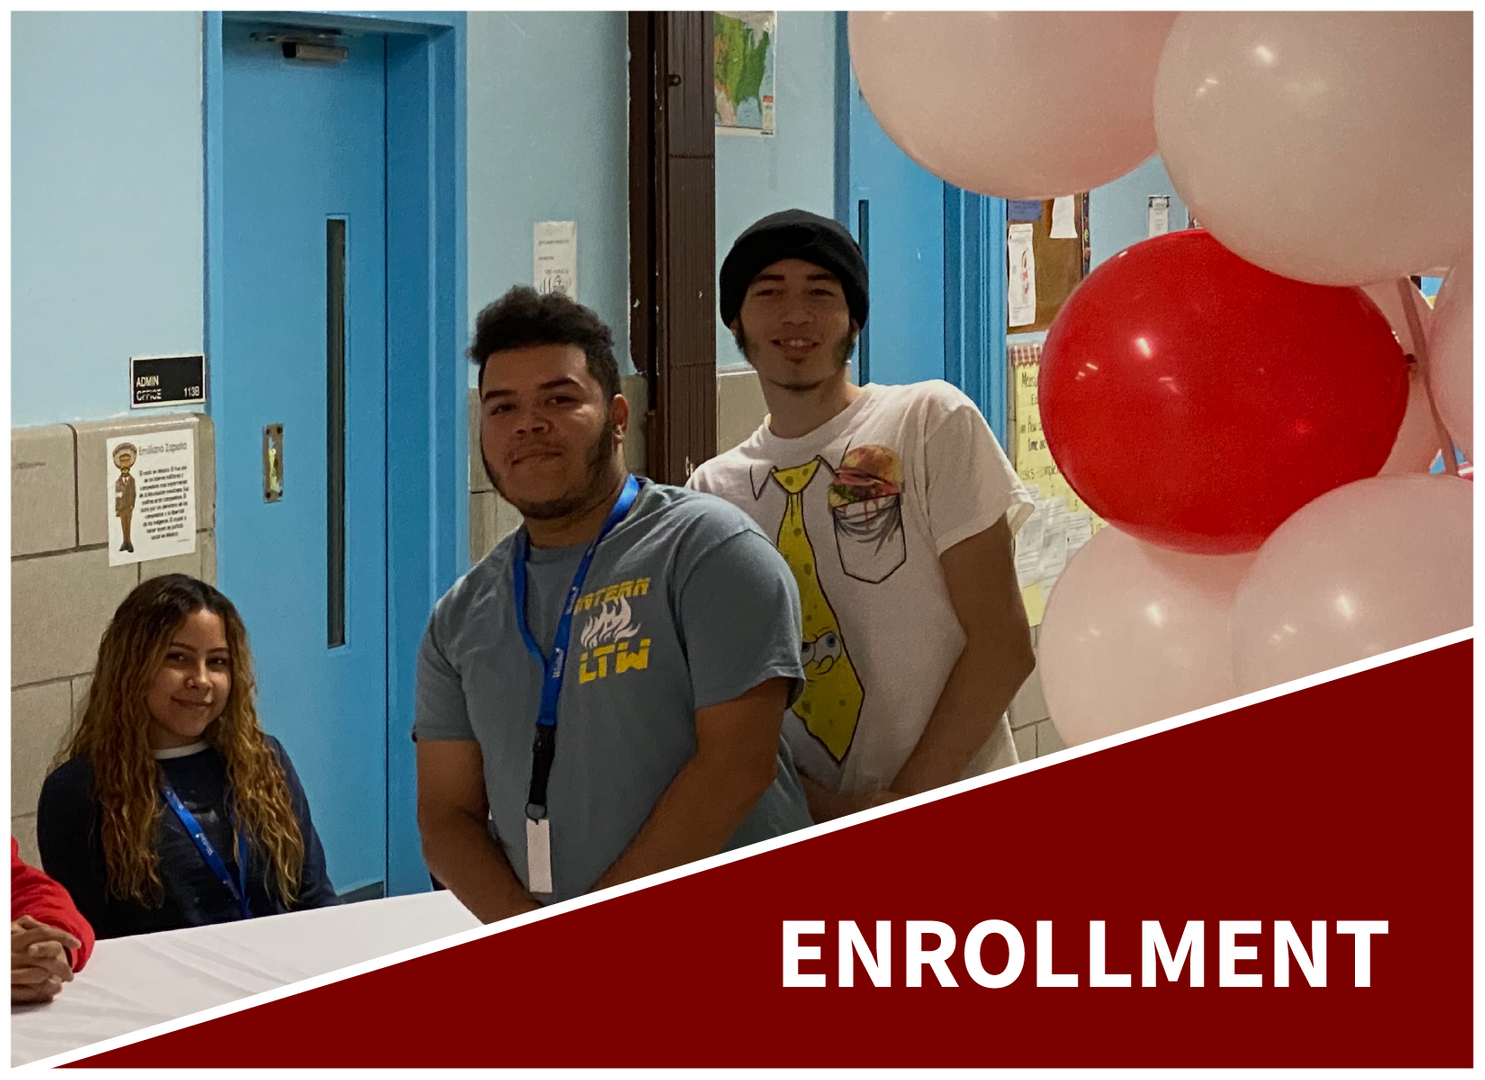 Enrollment: Students welcoming